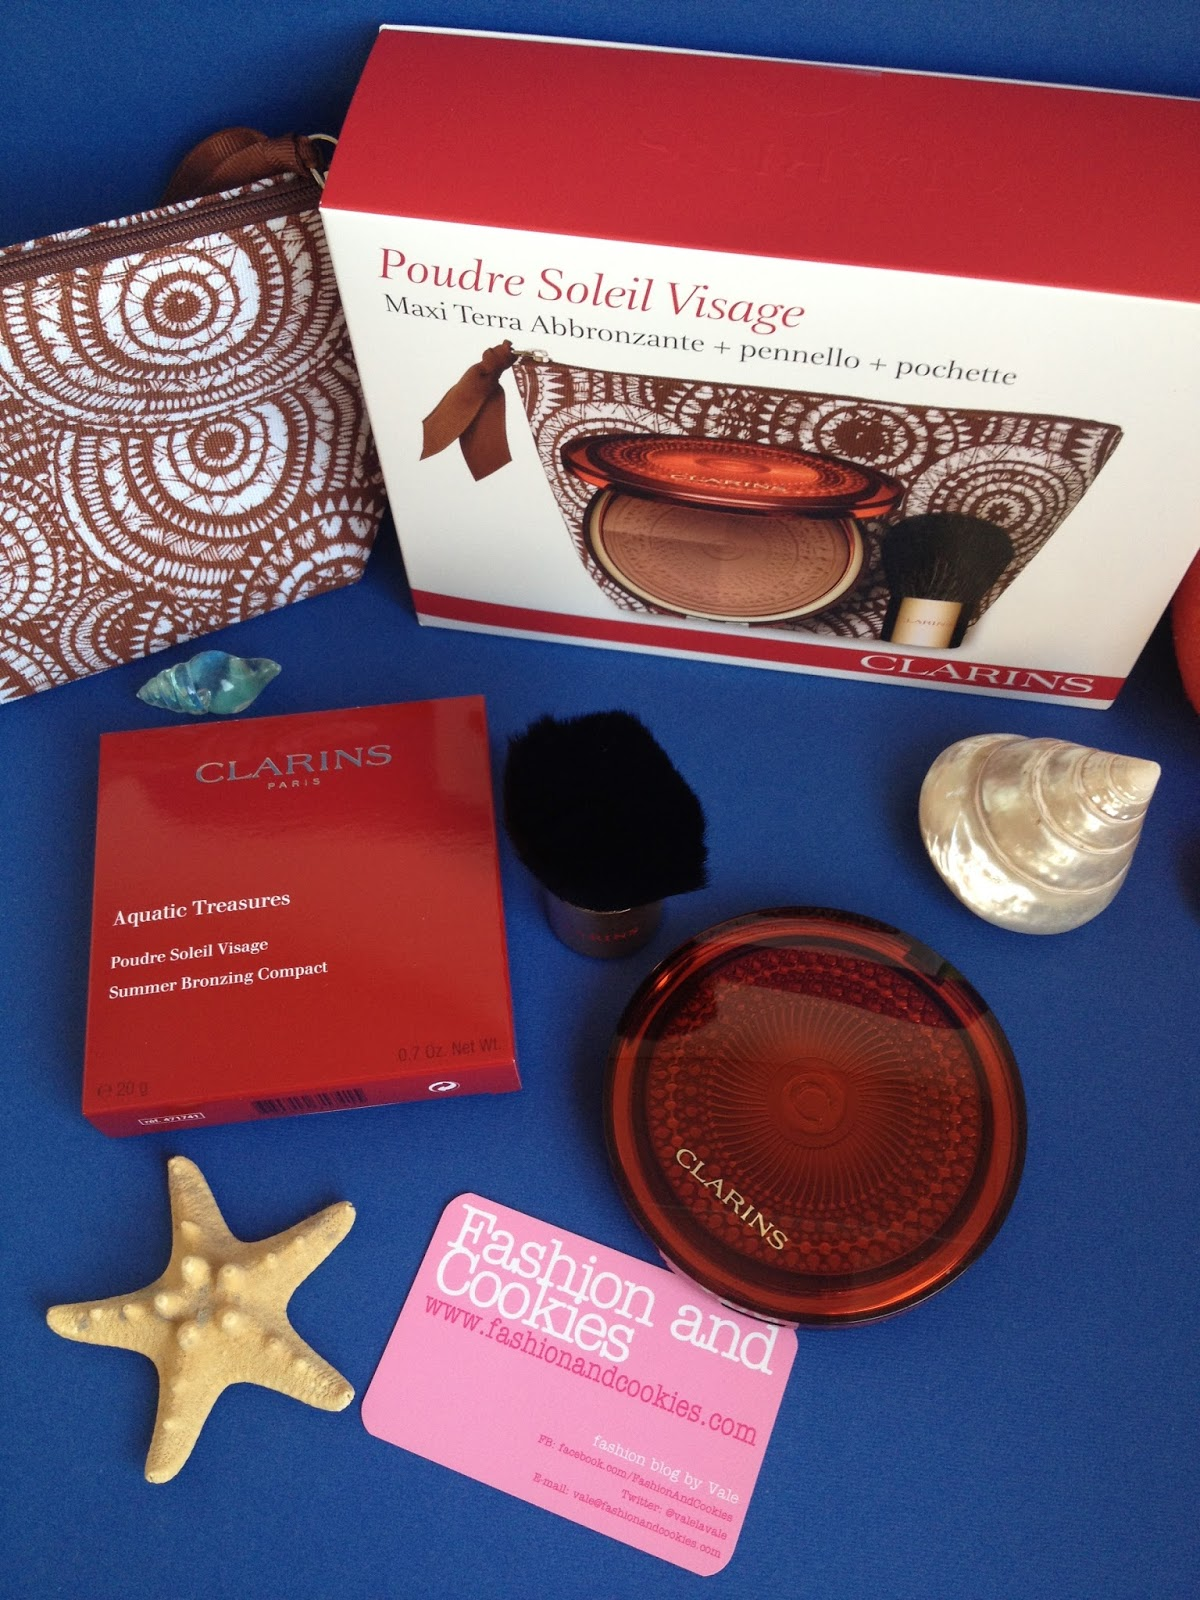 Clarins Aquatic Treasures Poudre Soleil Visage on Fashion and Cookies fashion and beauty blog, clarins aquatic treasures bronzer review